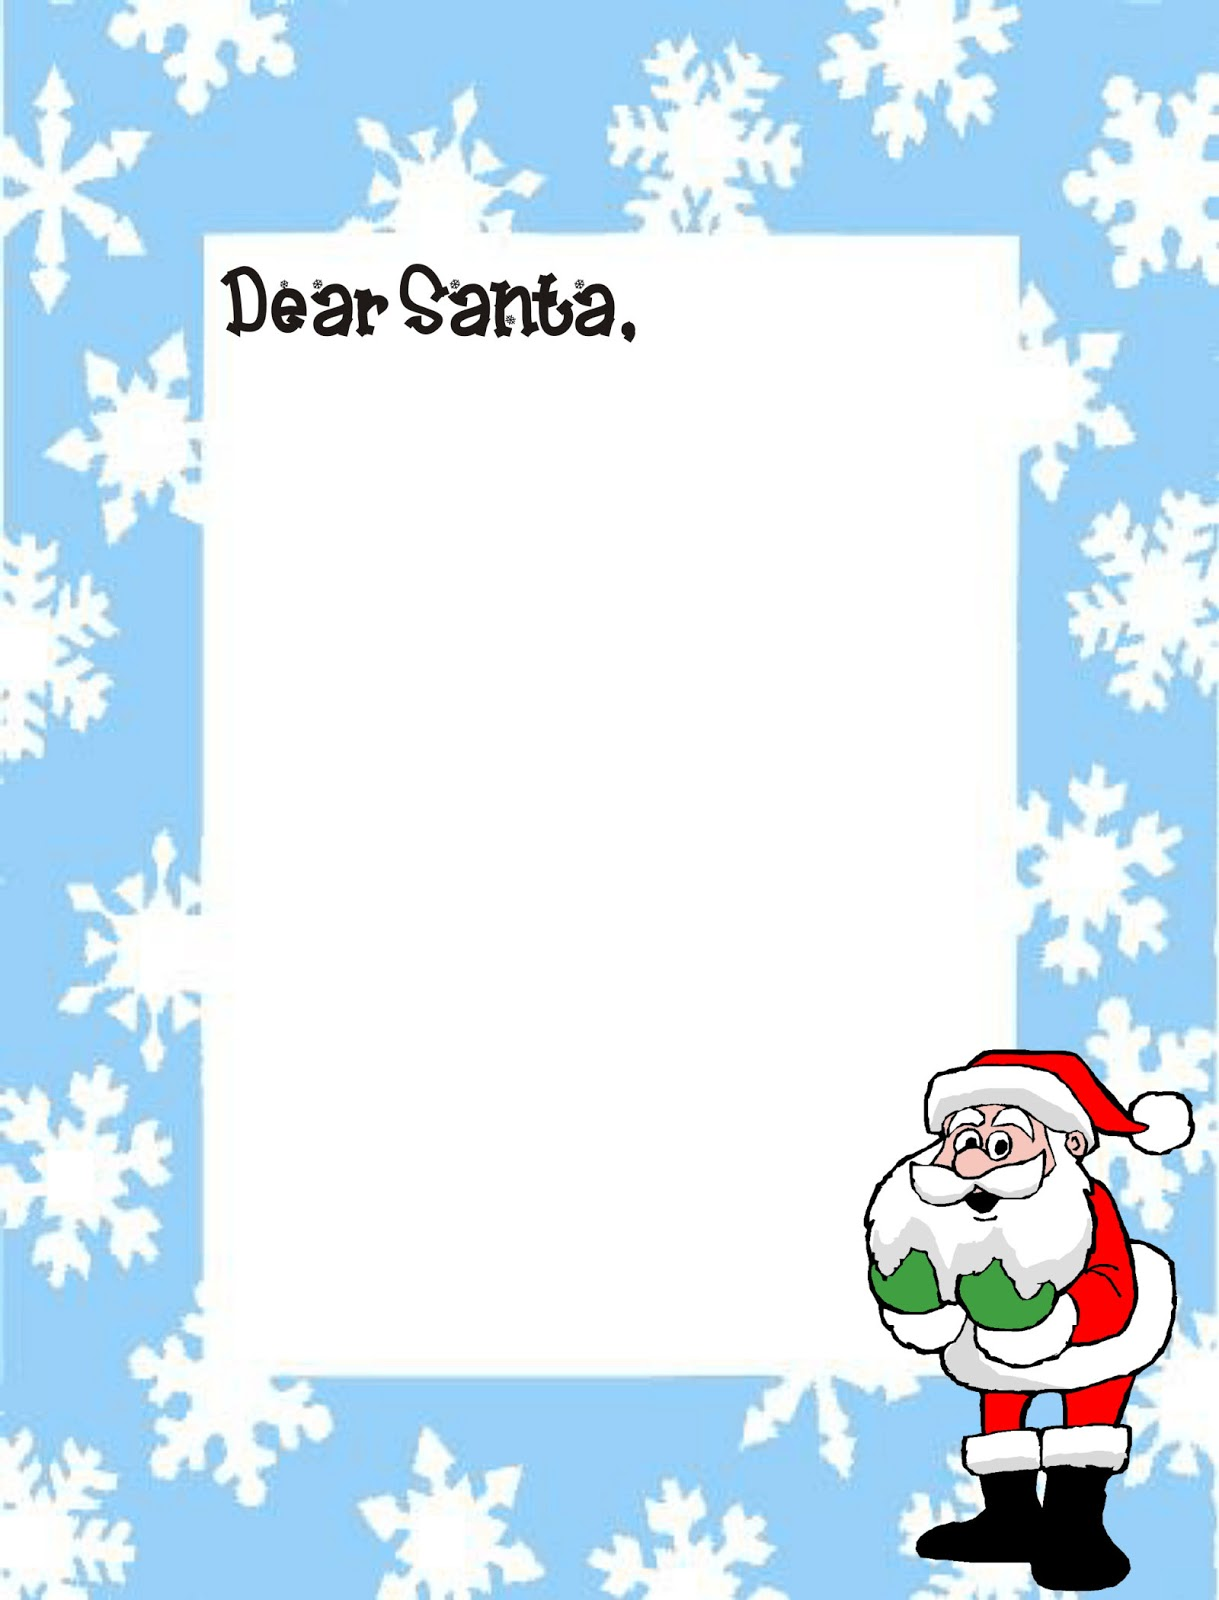 Christmas letter template solarfm portablegasgrillweber all about best resume experience spiritdancerdesigns Images